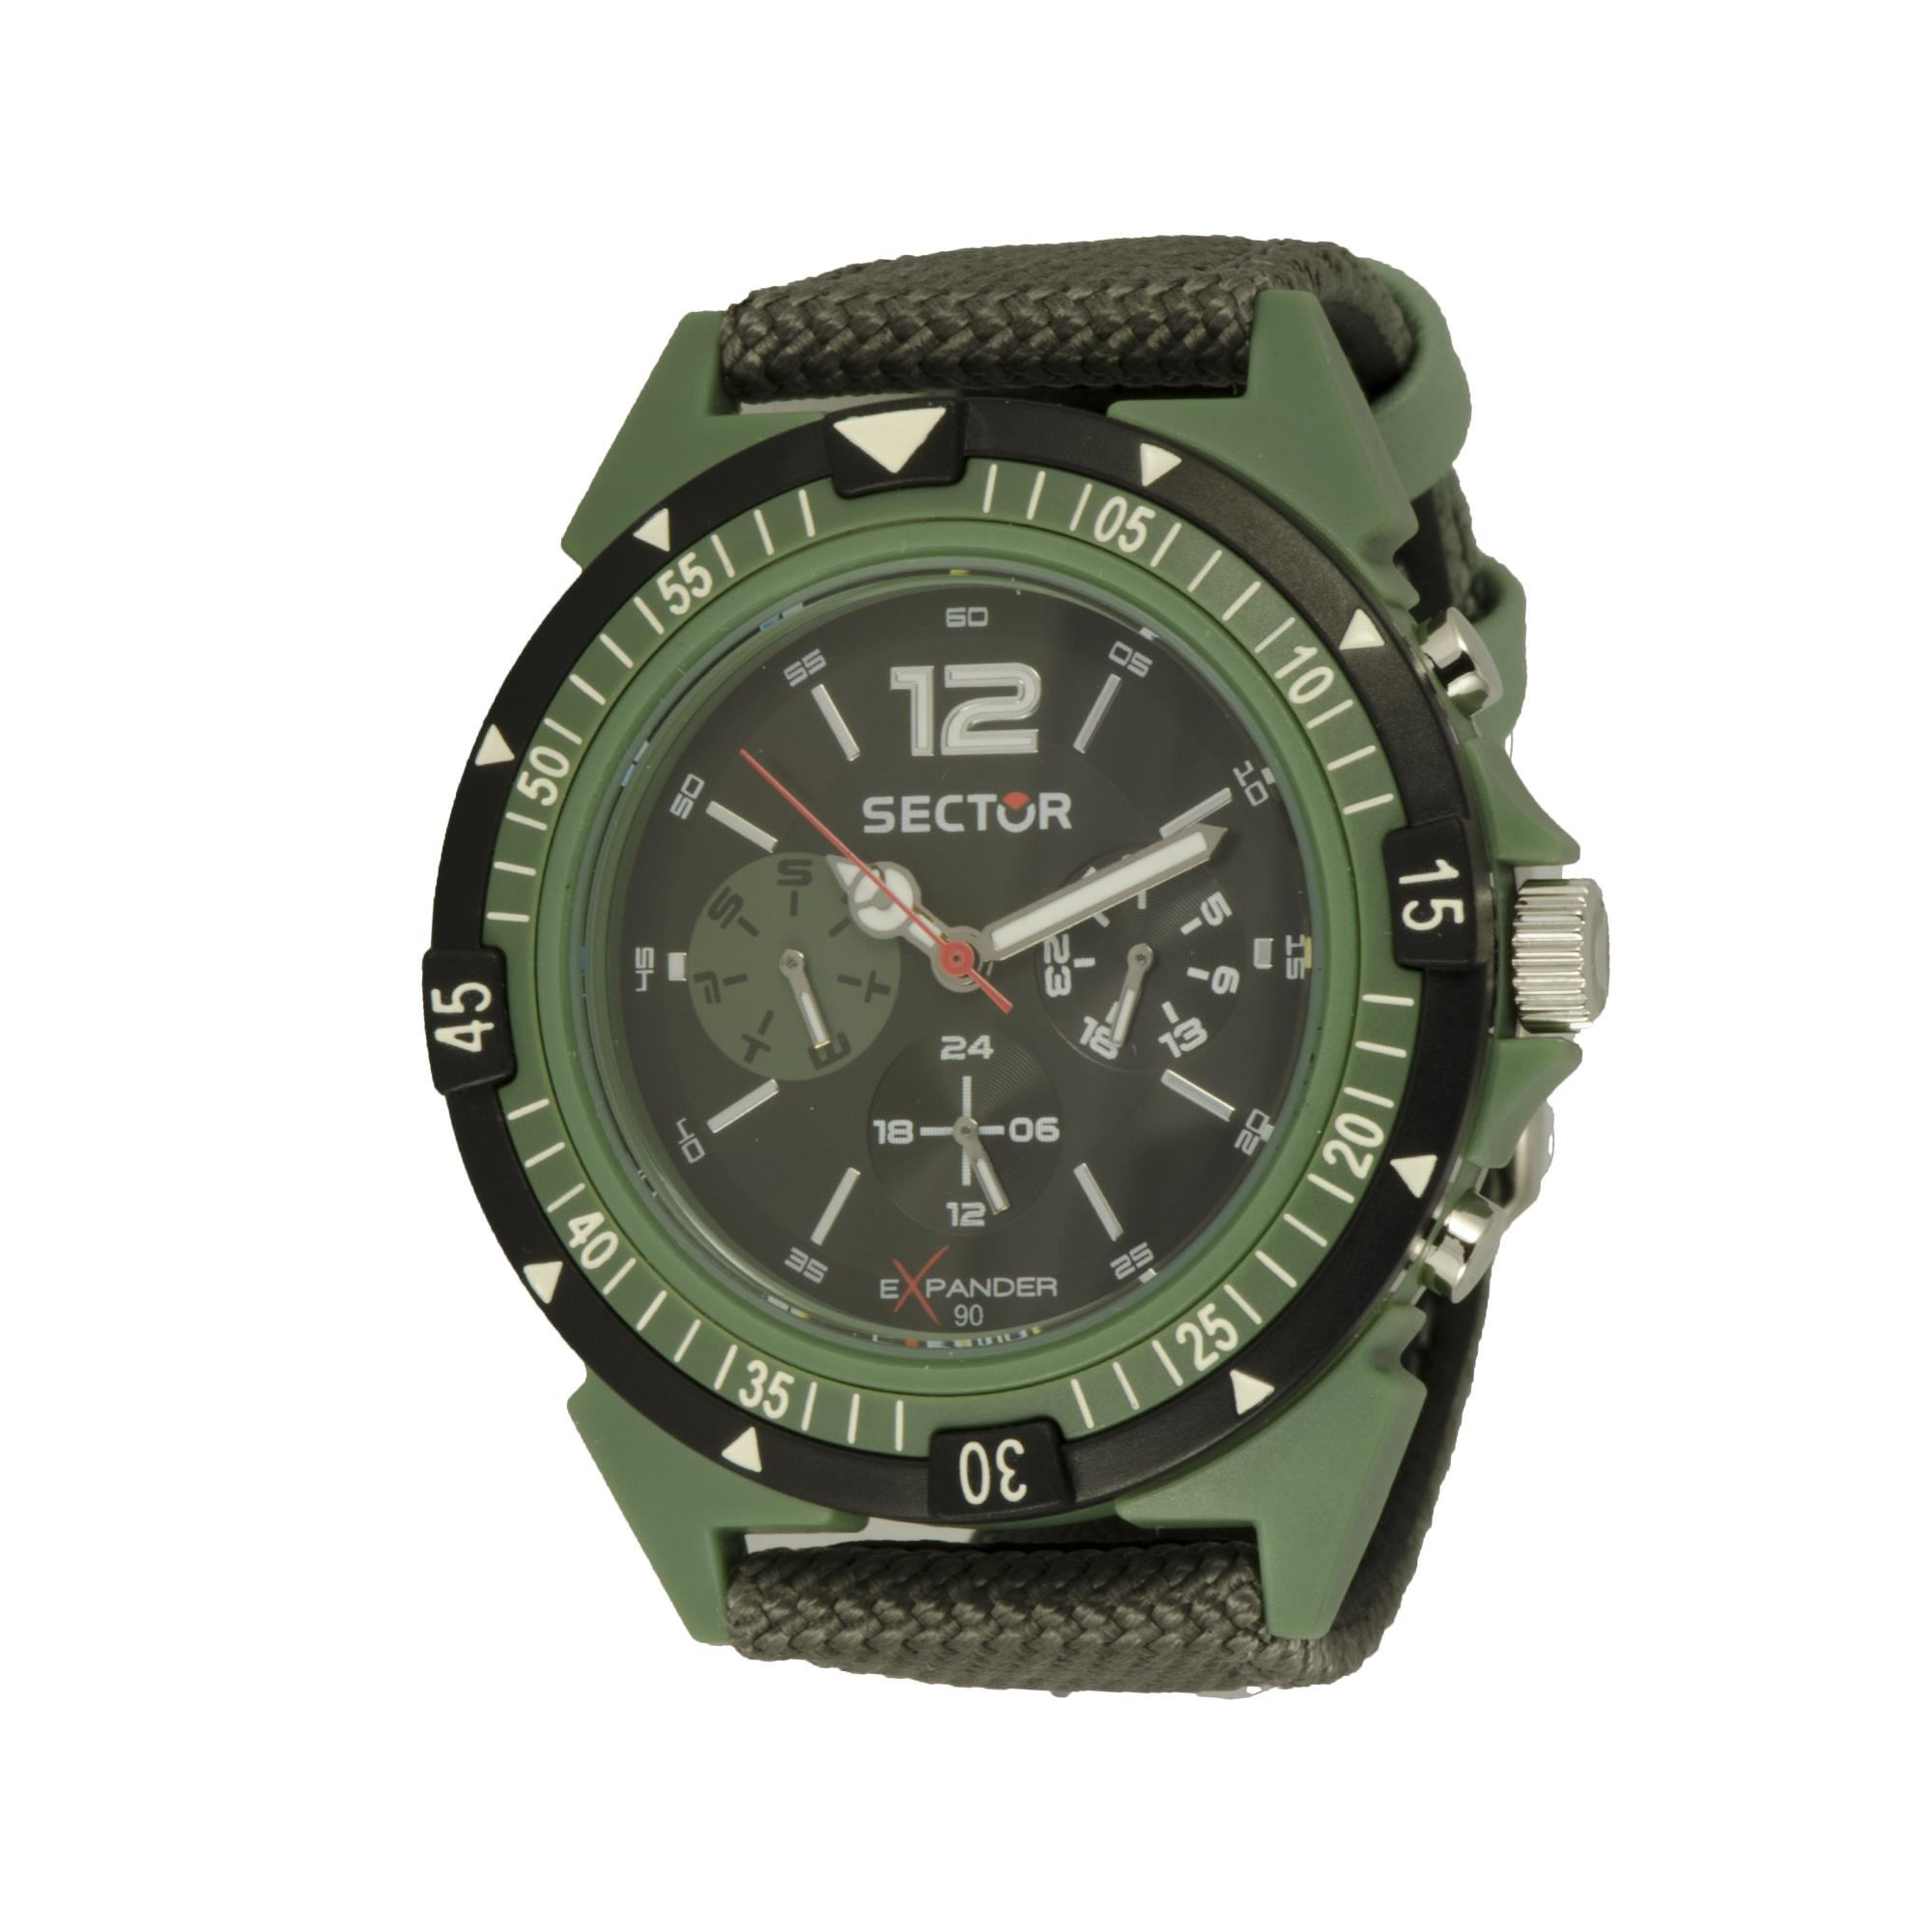 OROLOGIO EXPANDER 90 44 MM - SECTOR